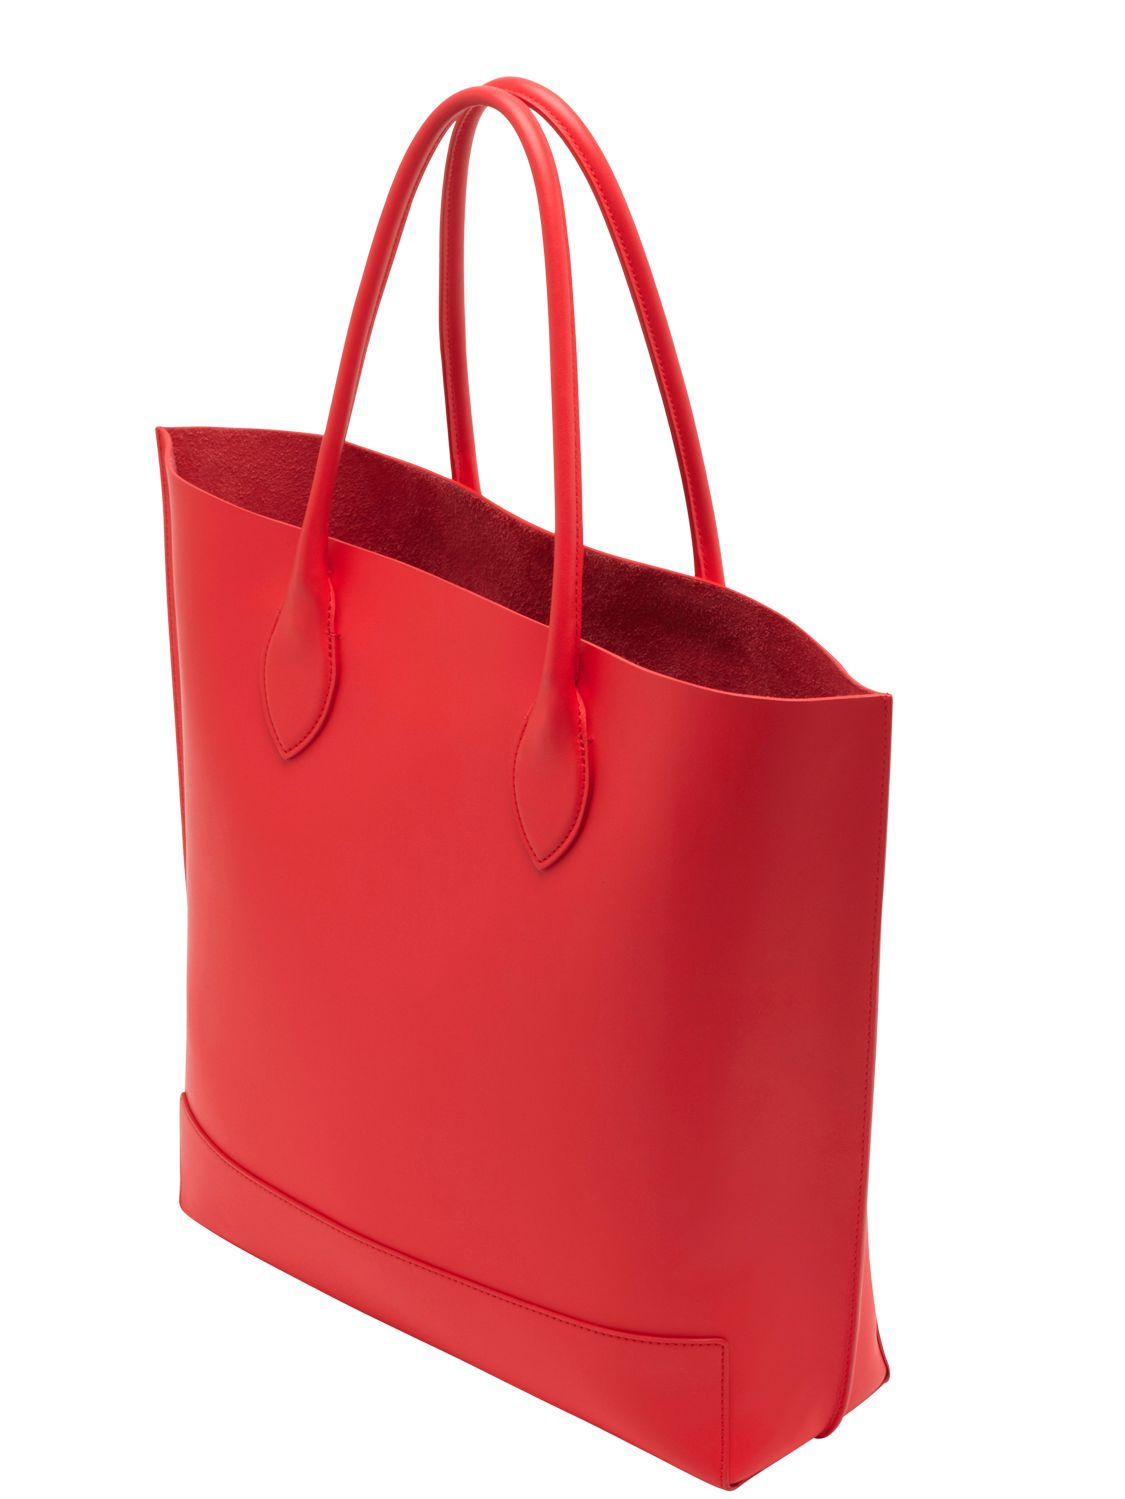 77a3df263b authentic lyst mulberry blossom nappa leather tote bag in red 3c253 058b5